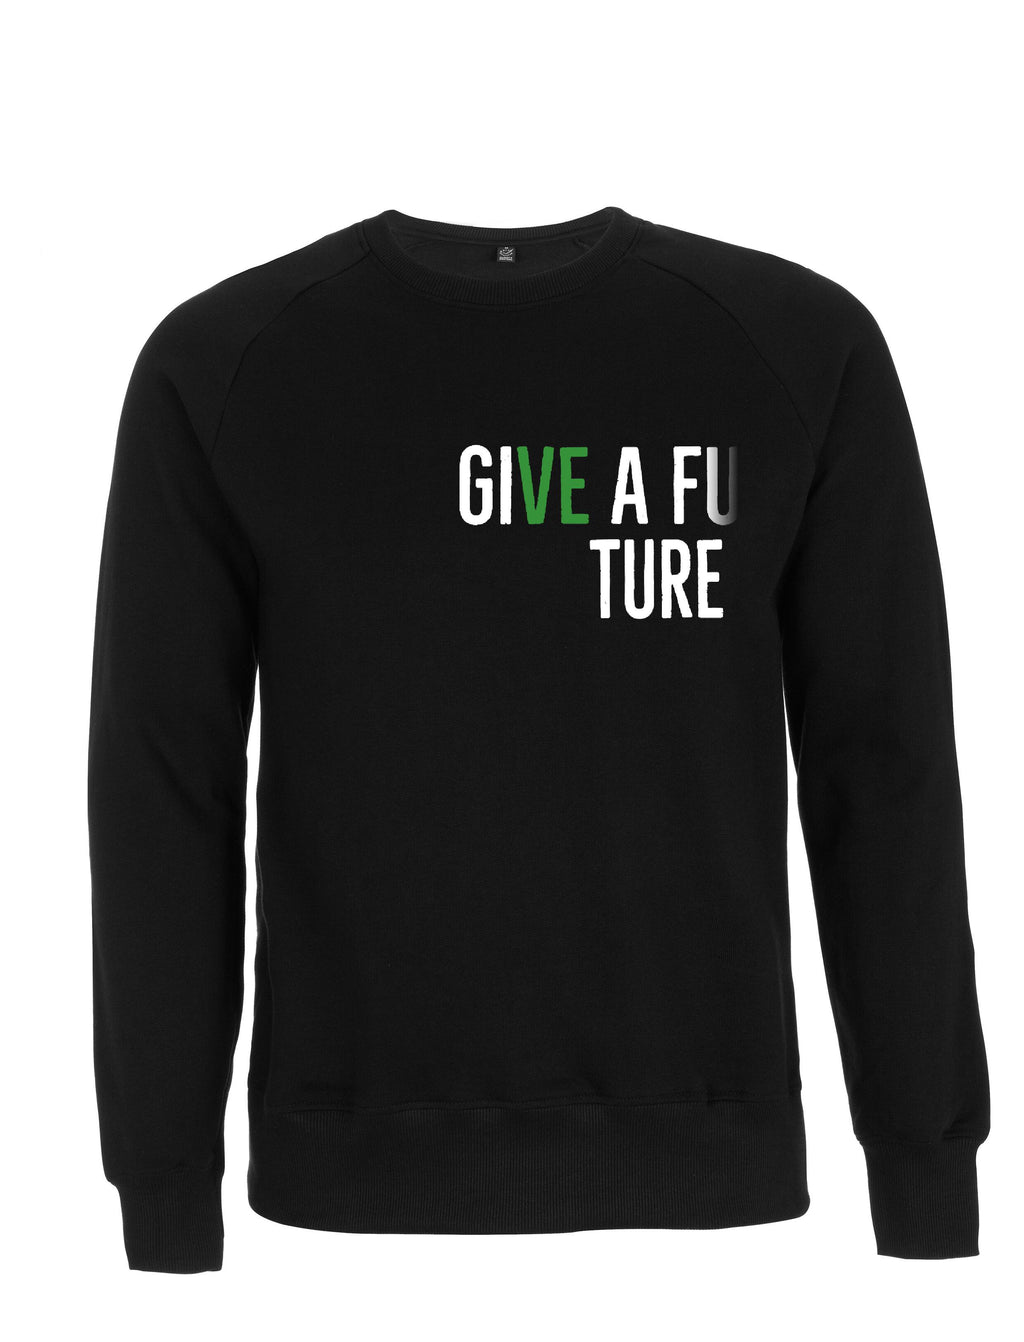 GIVE A FUTURE Unisex Organic Cotton Sweatshirt